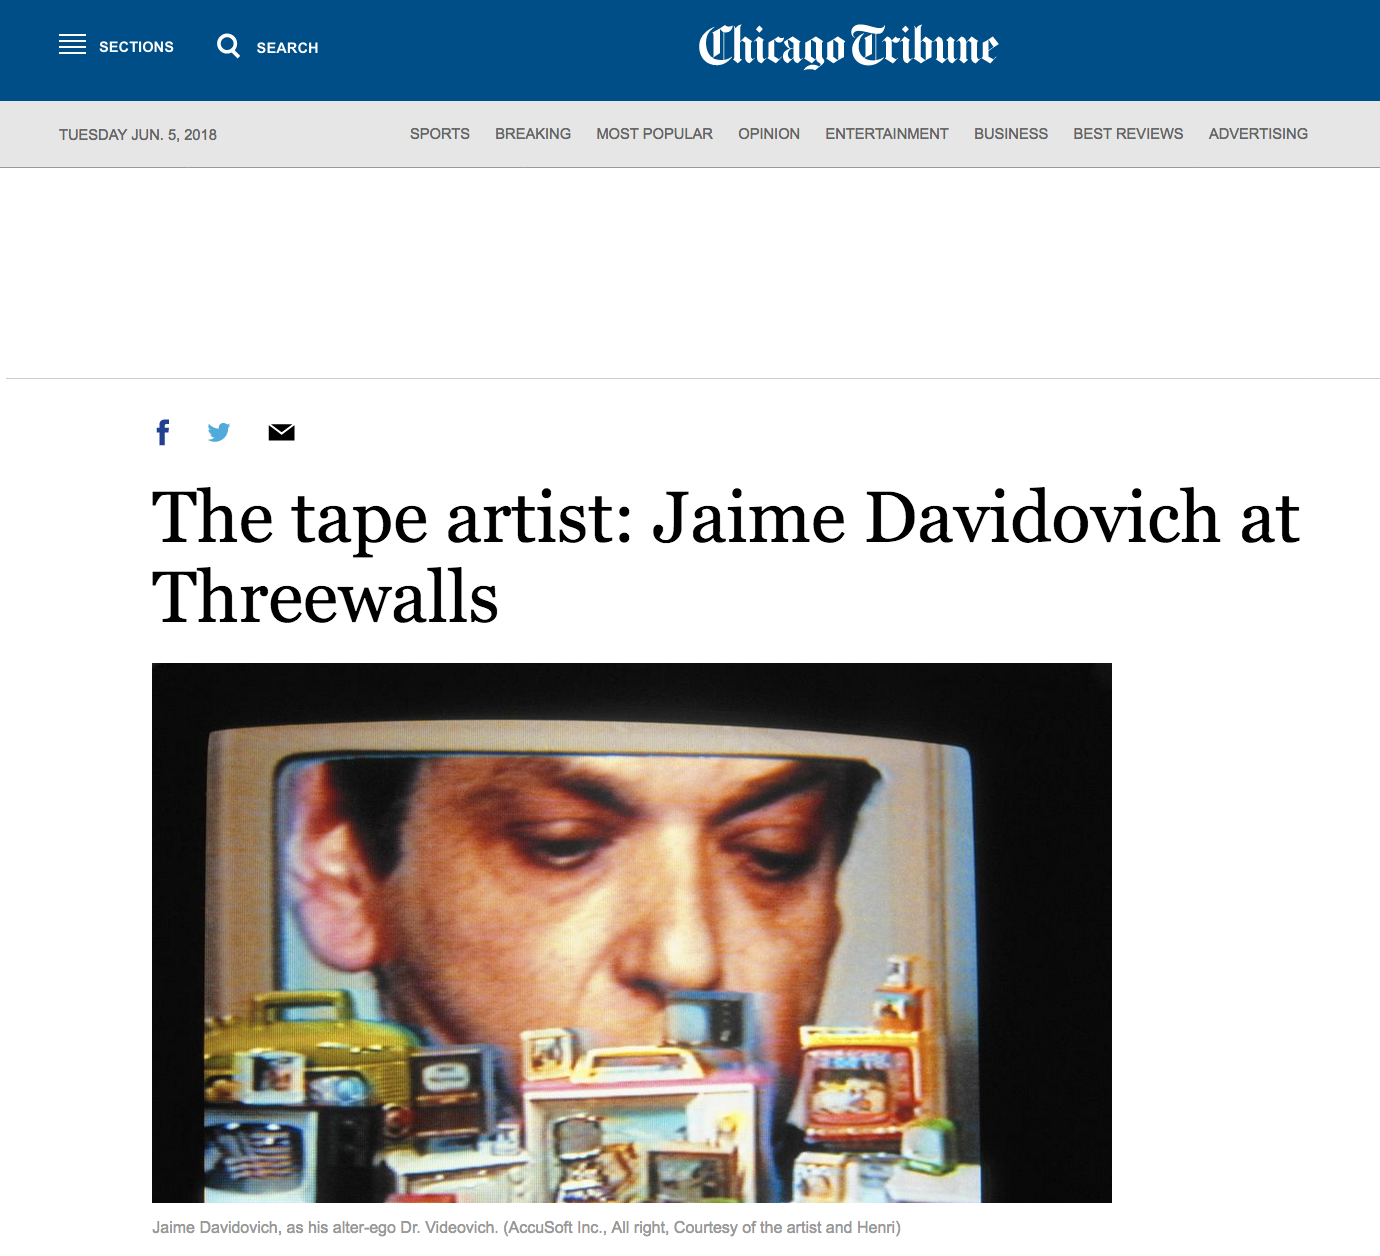 The tape artist: Jaime Davidovich at Threewalls - Chicago Tribune - March 19, 2015